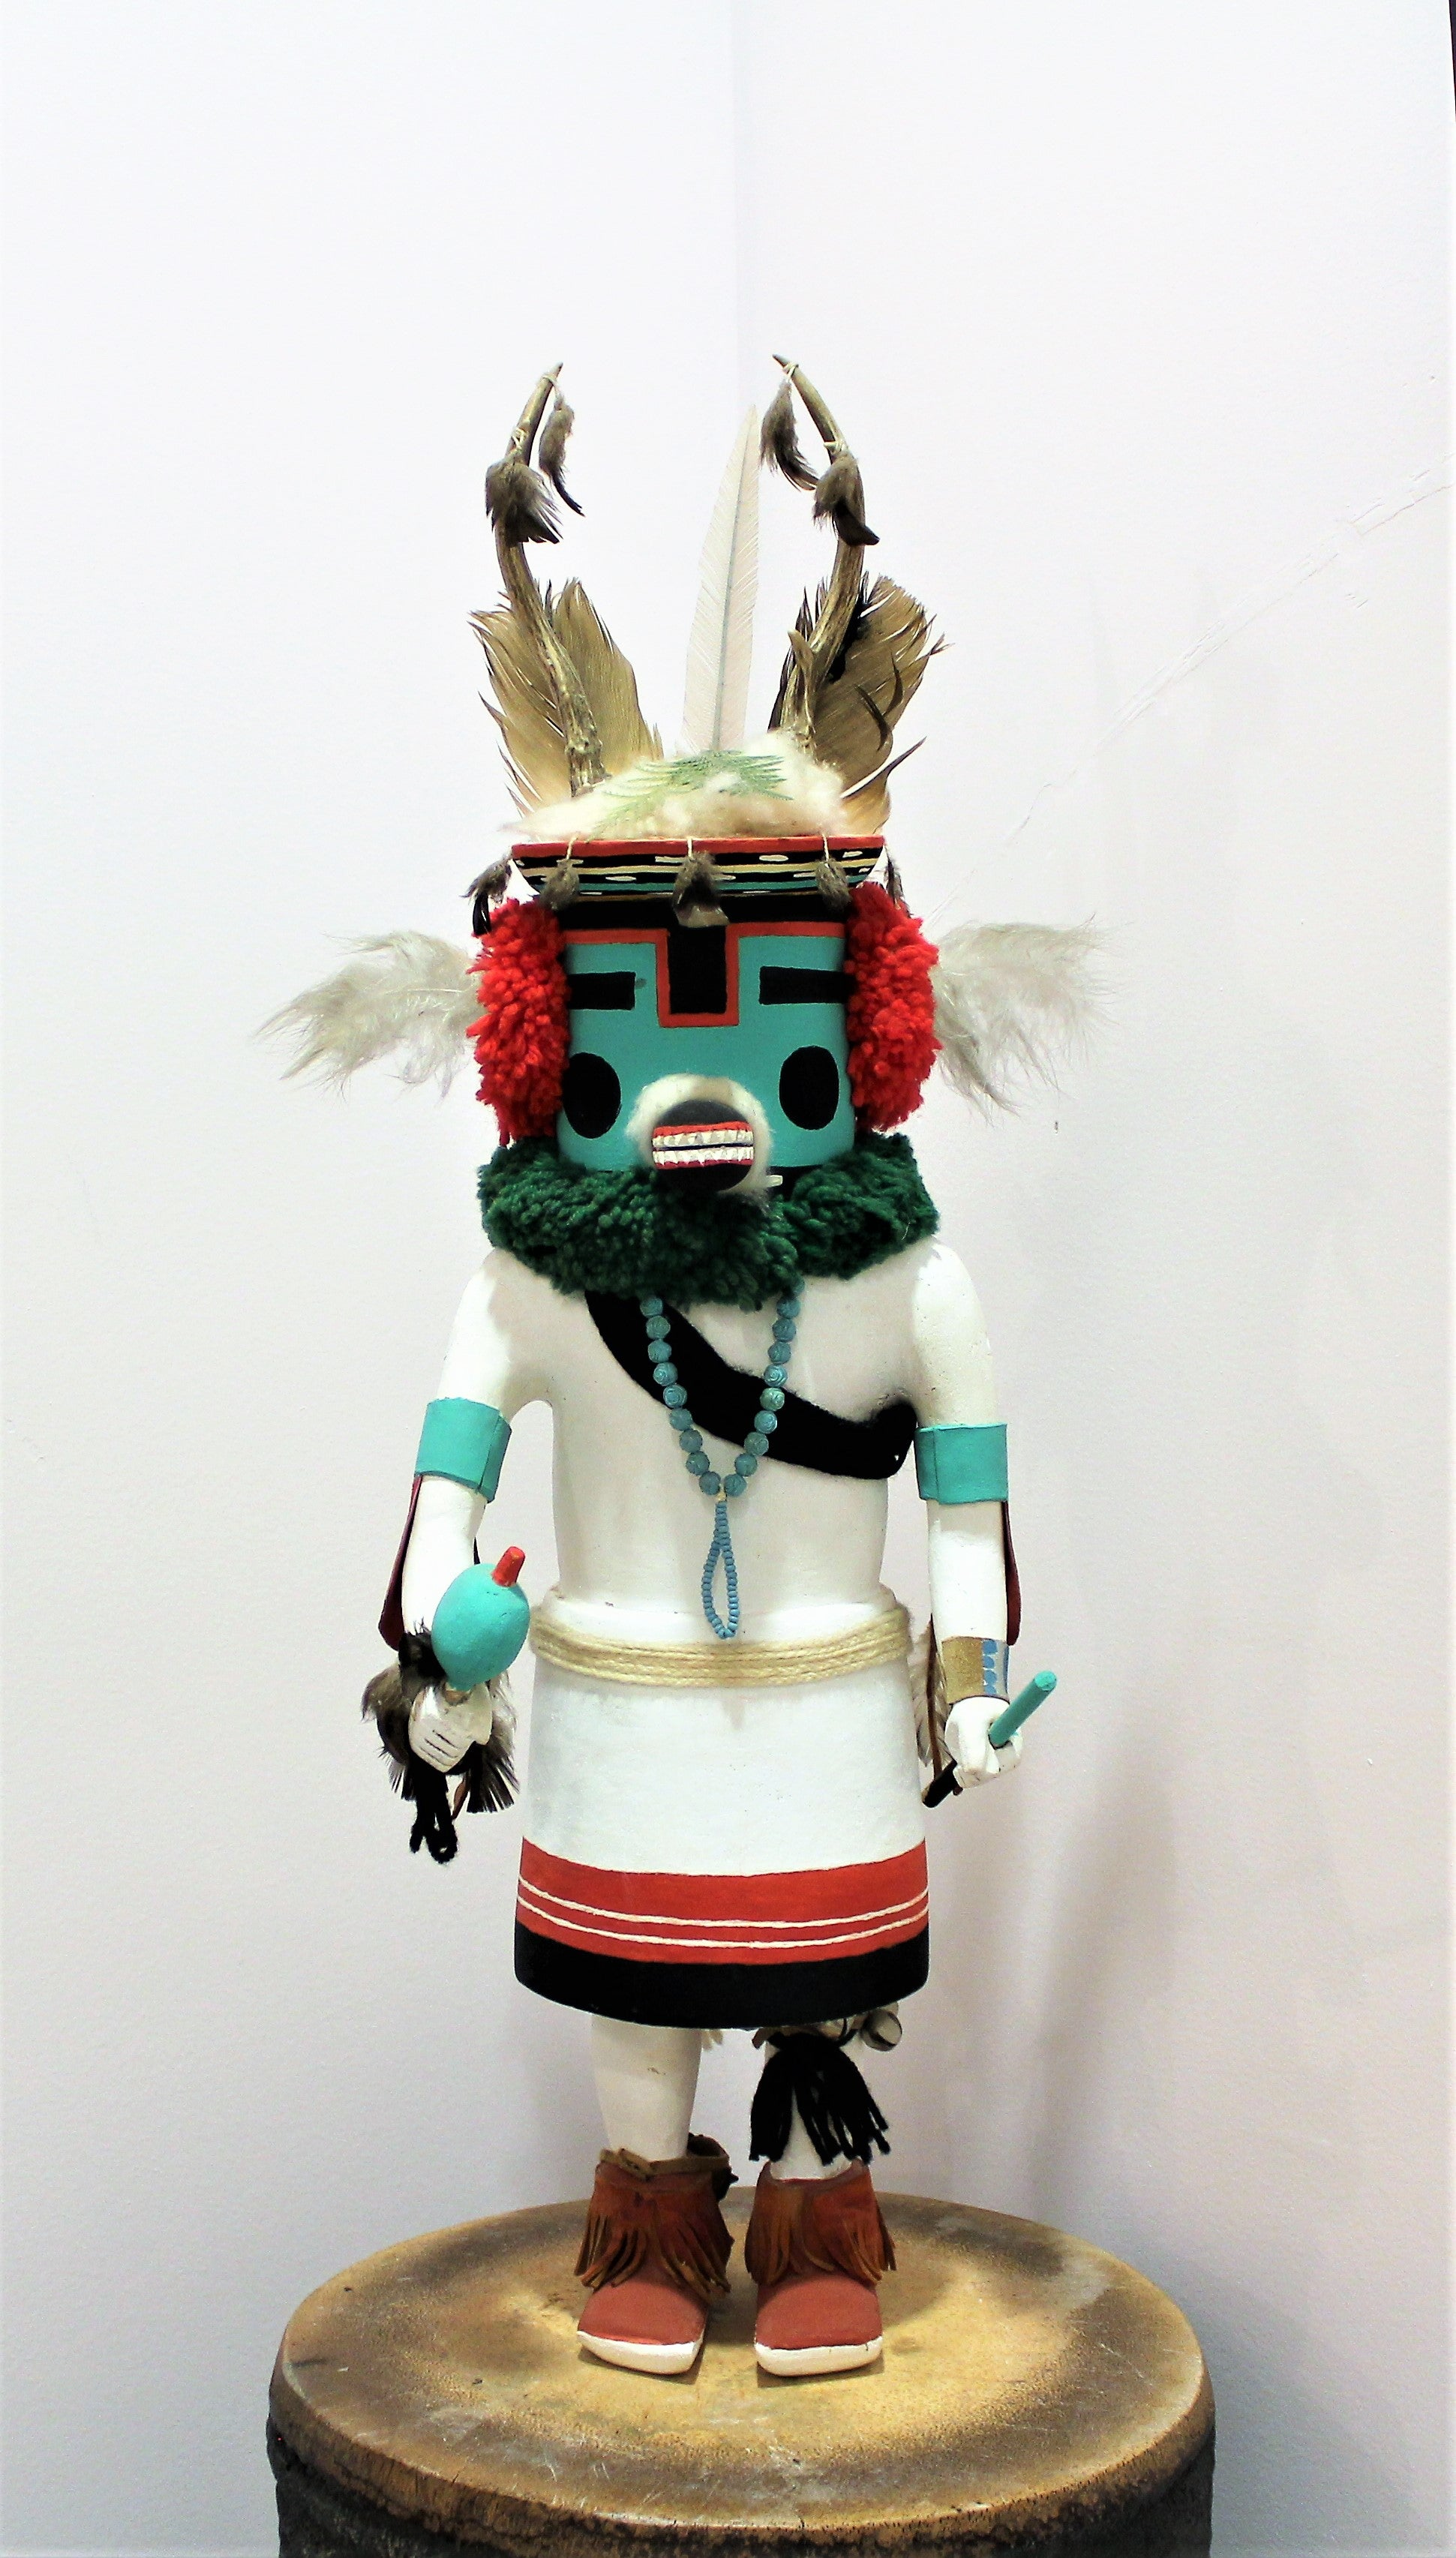 Large Deer Kachina Doll Sculpture